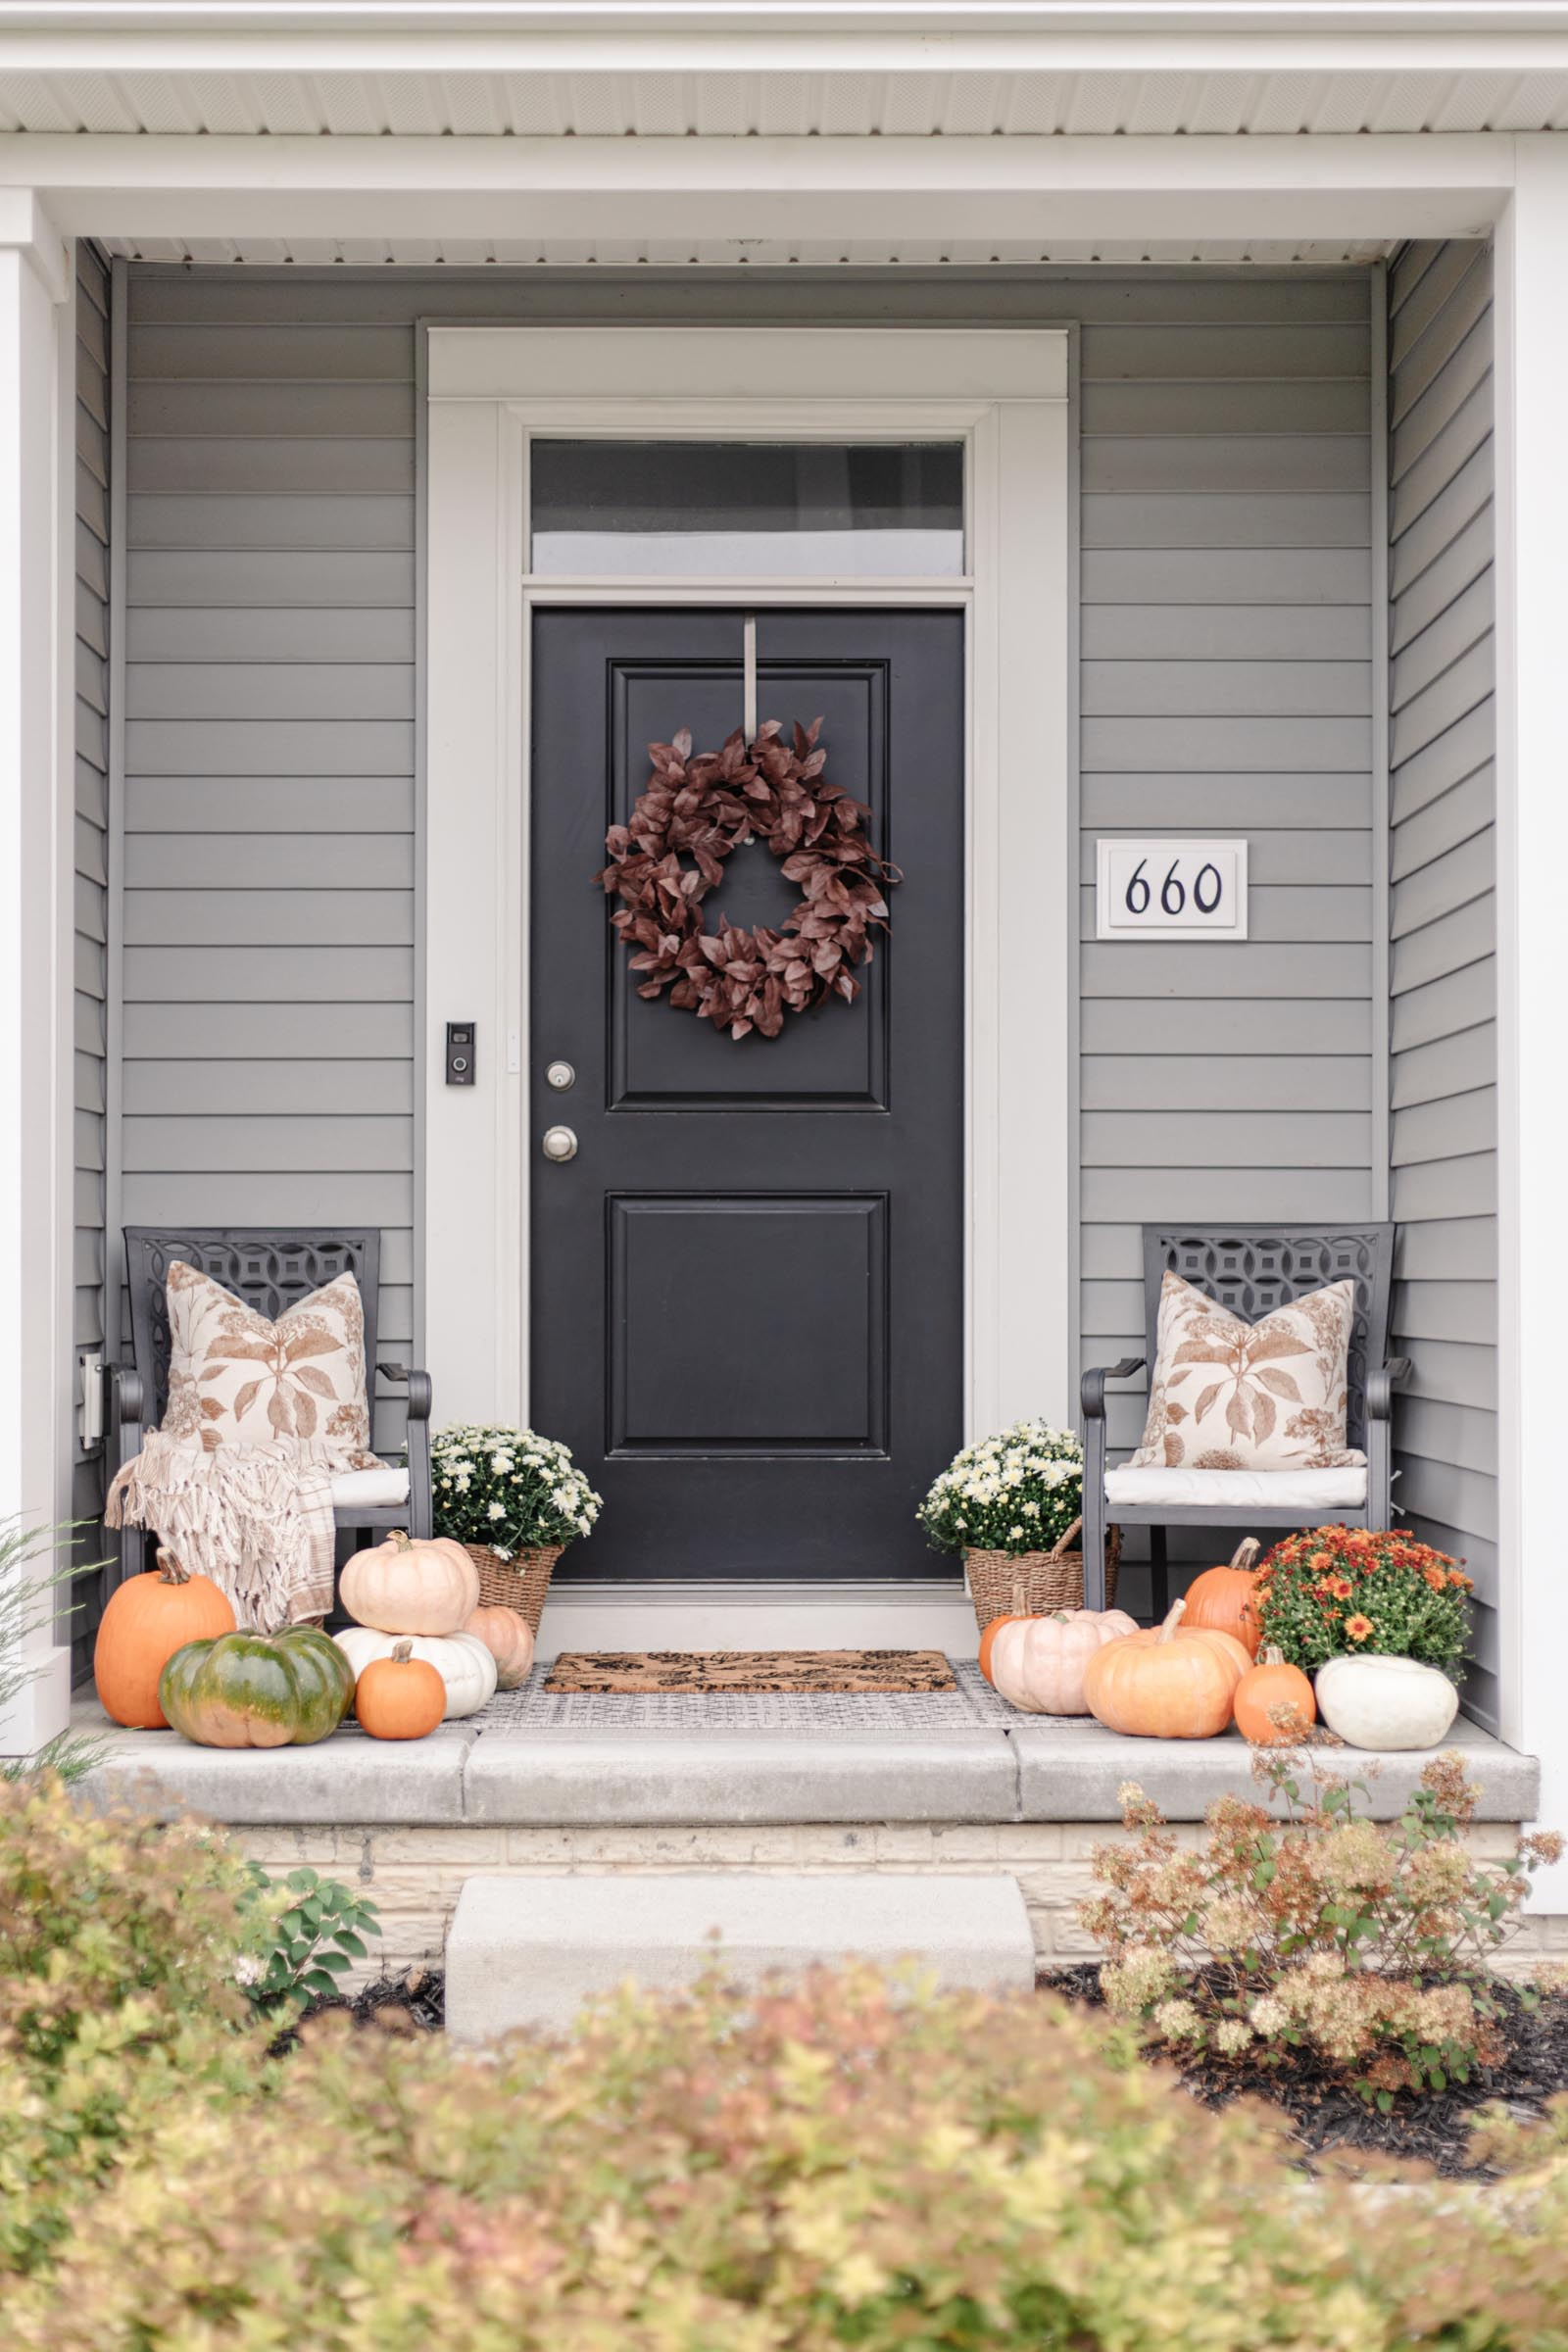 fall front porch decor with autumn wreath, colorful pumpkins, fall pillows, outdoor chairs, layered rugs